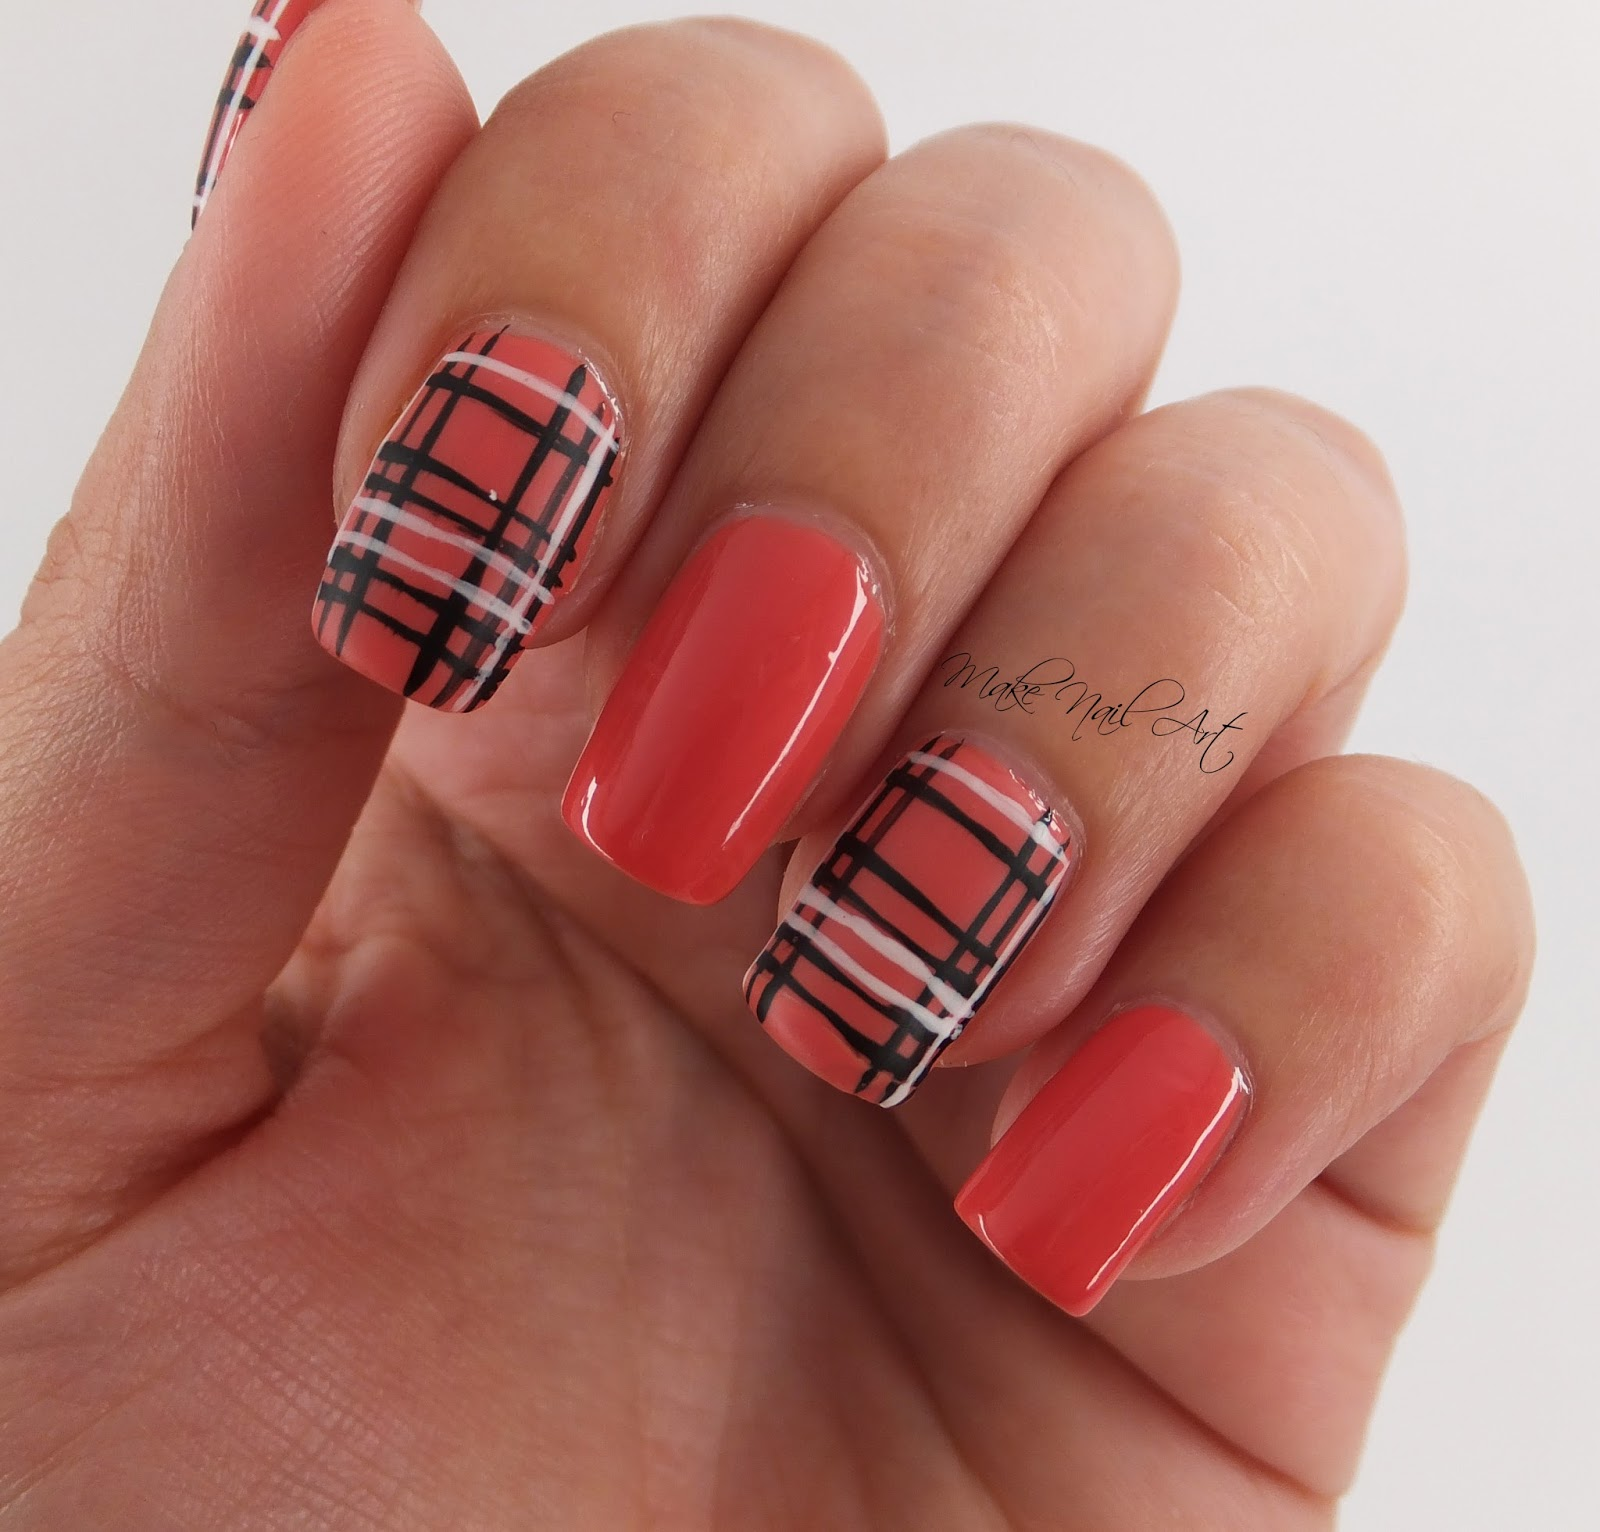 Make nail art easy autumn plaid nails nail art design tutorial then with a black and white stripers i made the plaid i finished with a matte top coat check out the video below for full tutorial prinsesfo Choice Image